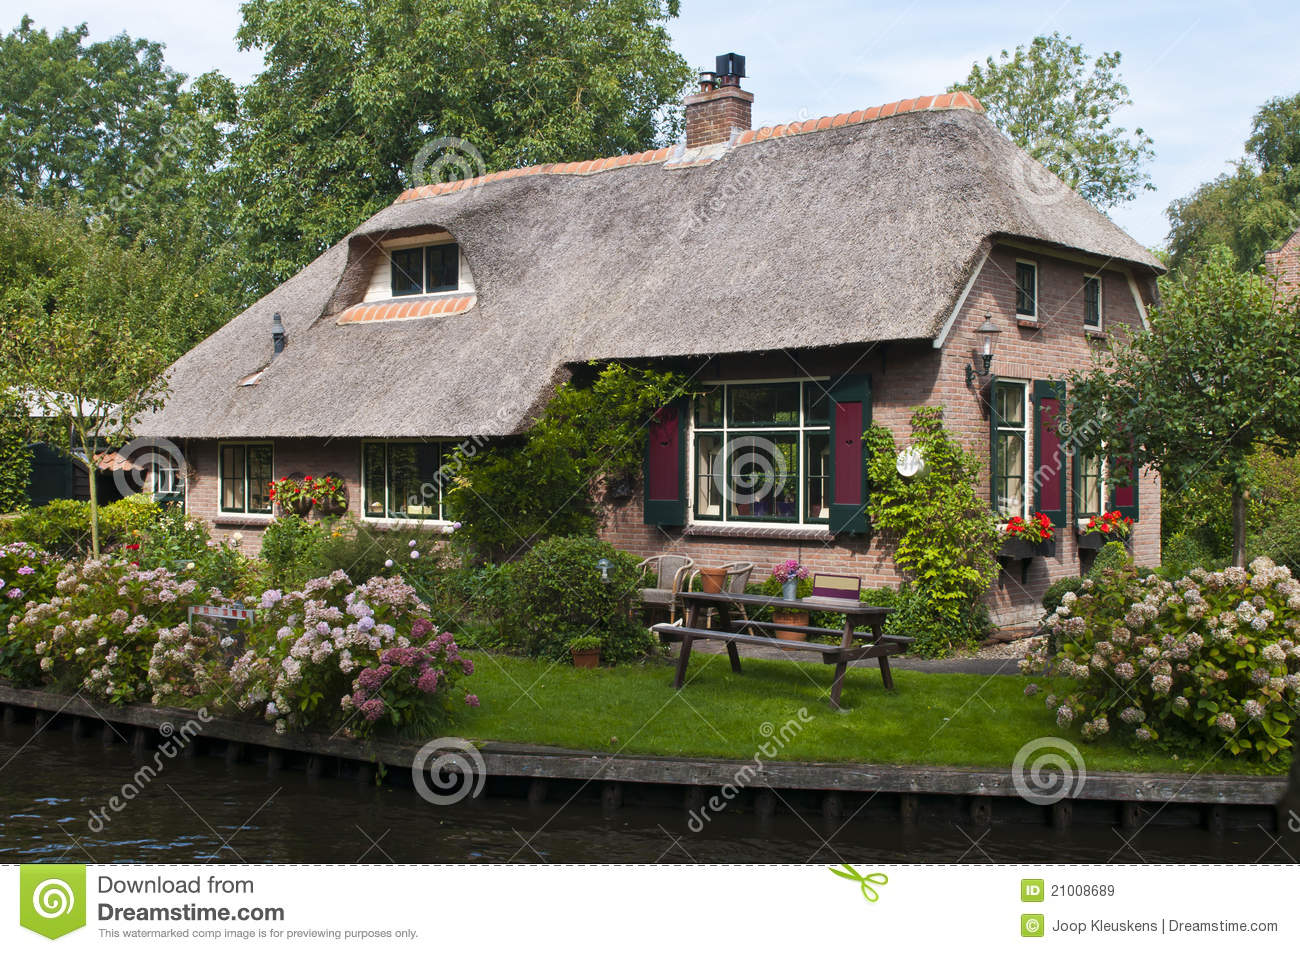 Tamil Nadu House Plans 800 Sqft also 591028284f940595 Shotgun House Plans Southern Living Old Shotgun House Plans as well Country Home furthermore SearchCS in addition Expand Housing Assistance To The Poor And Middle Class Is Actually Easier T. on low country house plans